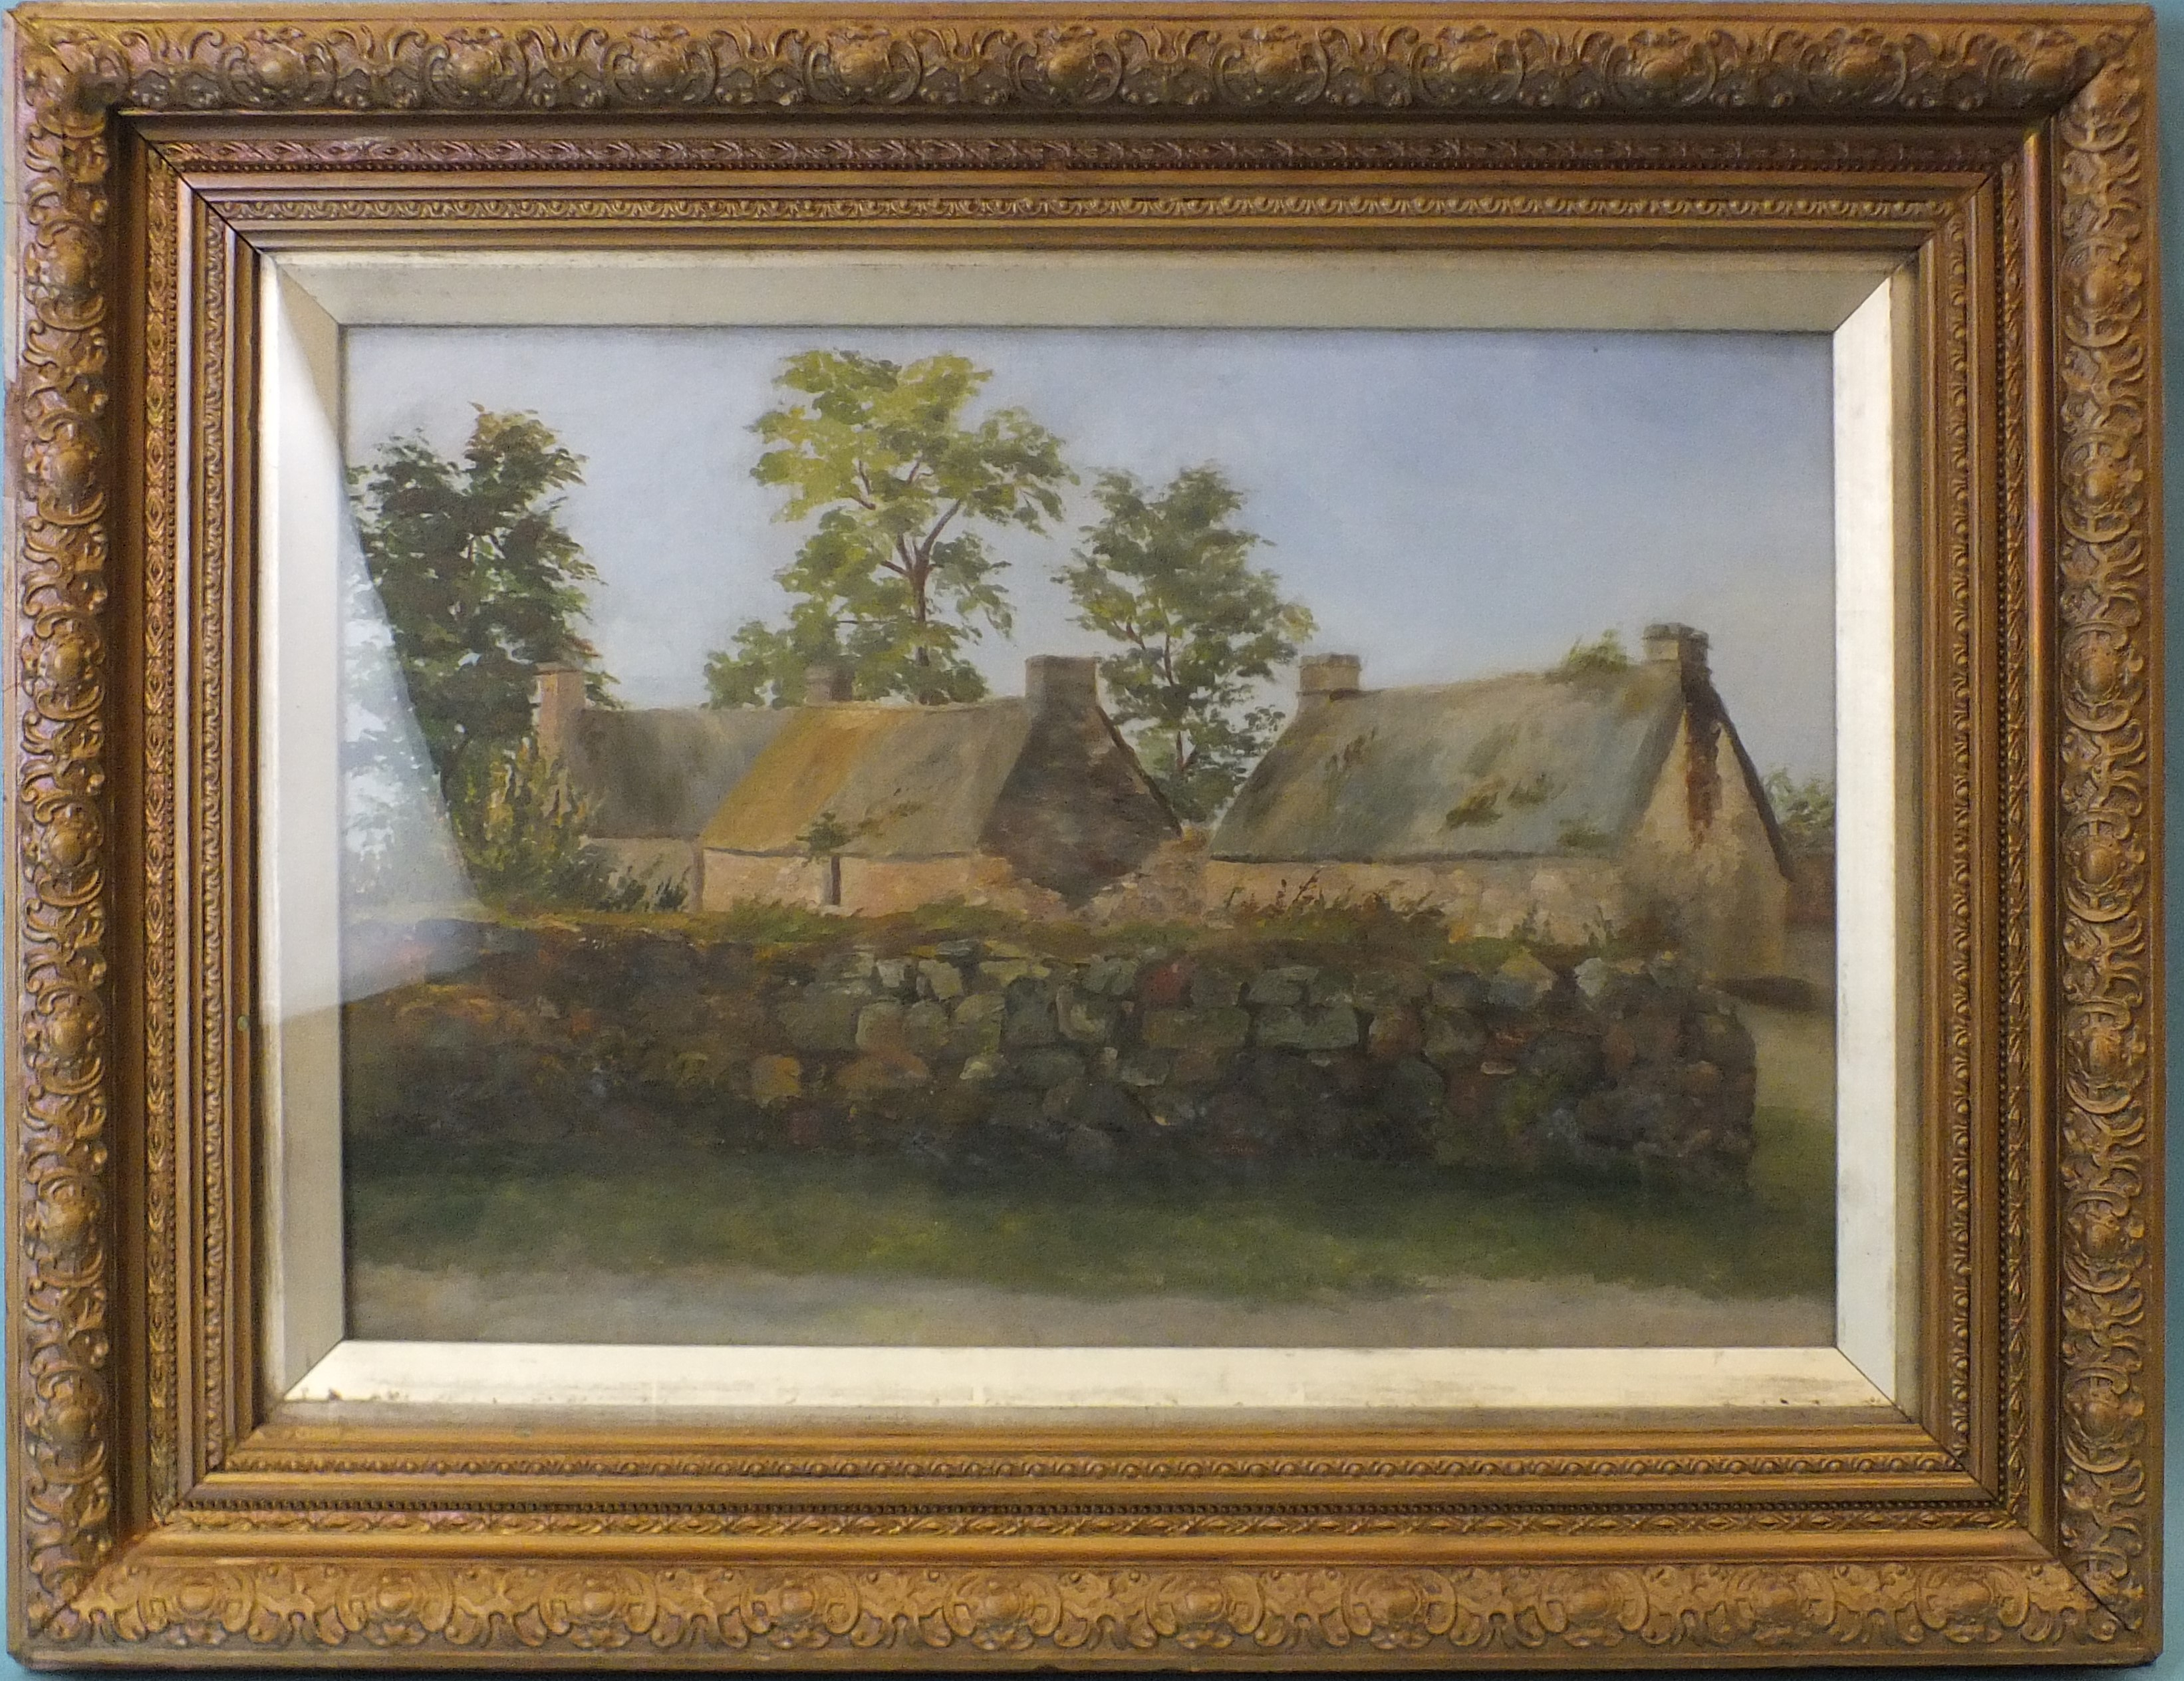 Late-19th/early-20th century GROUP OF THREE THATCHED COTTAGES BEHIND A STONE WALL Unsigned oil on